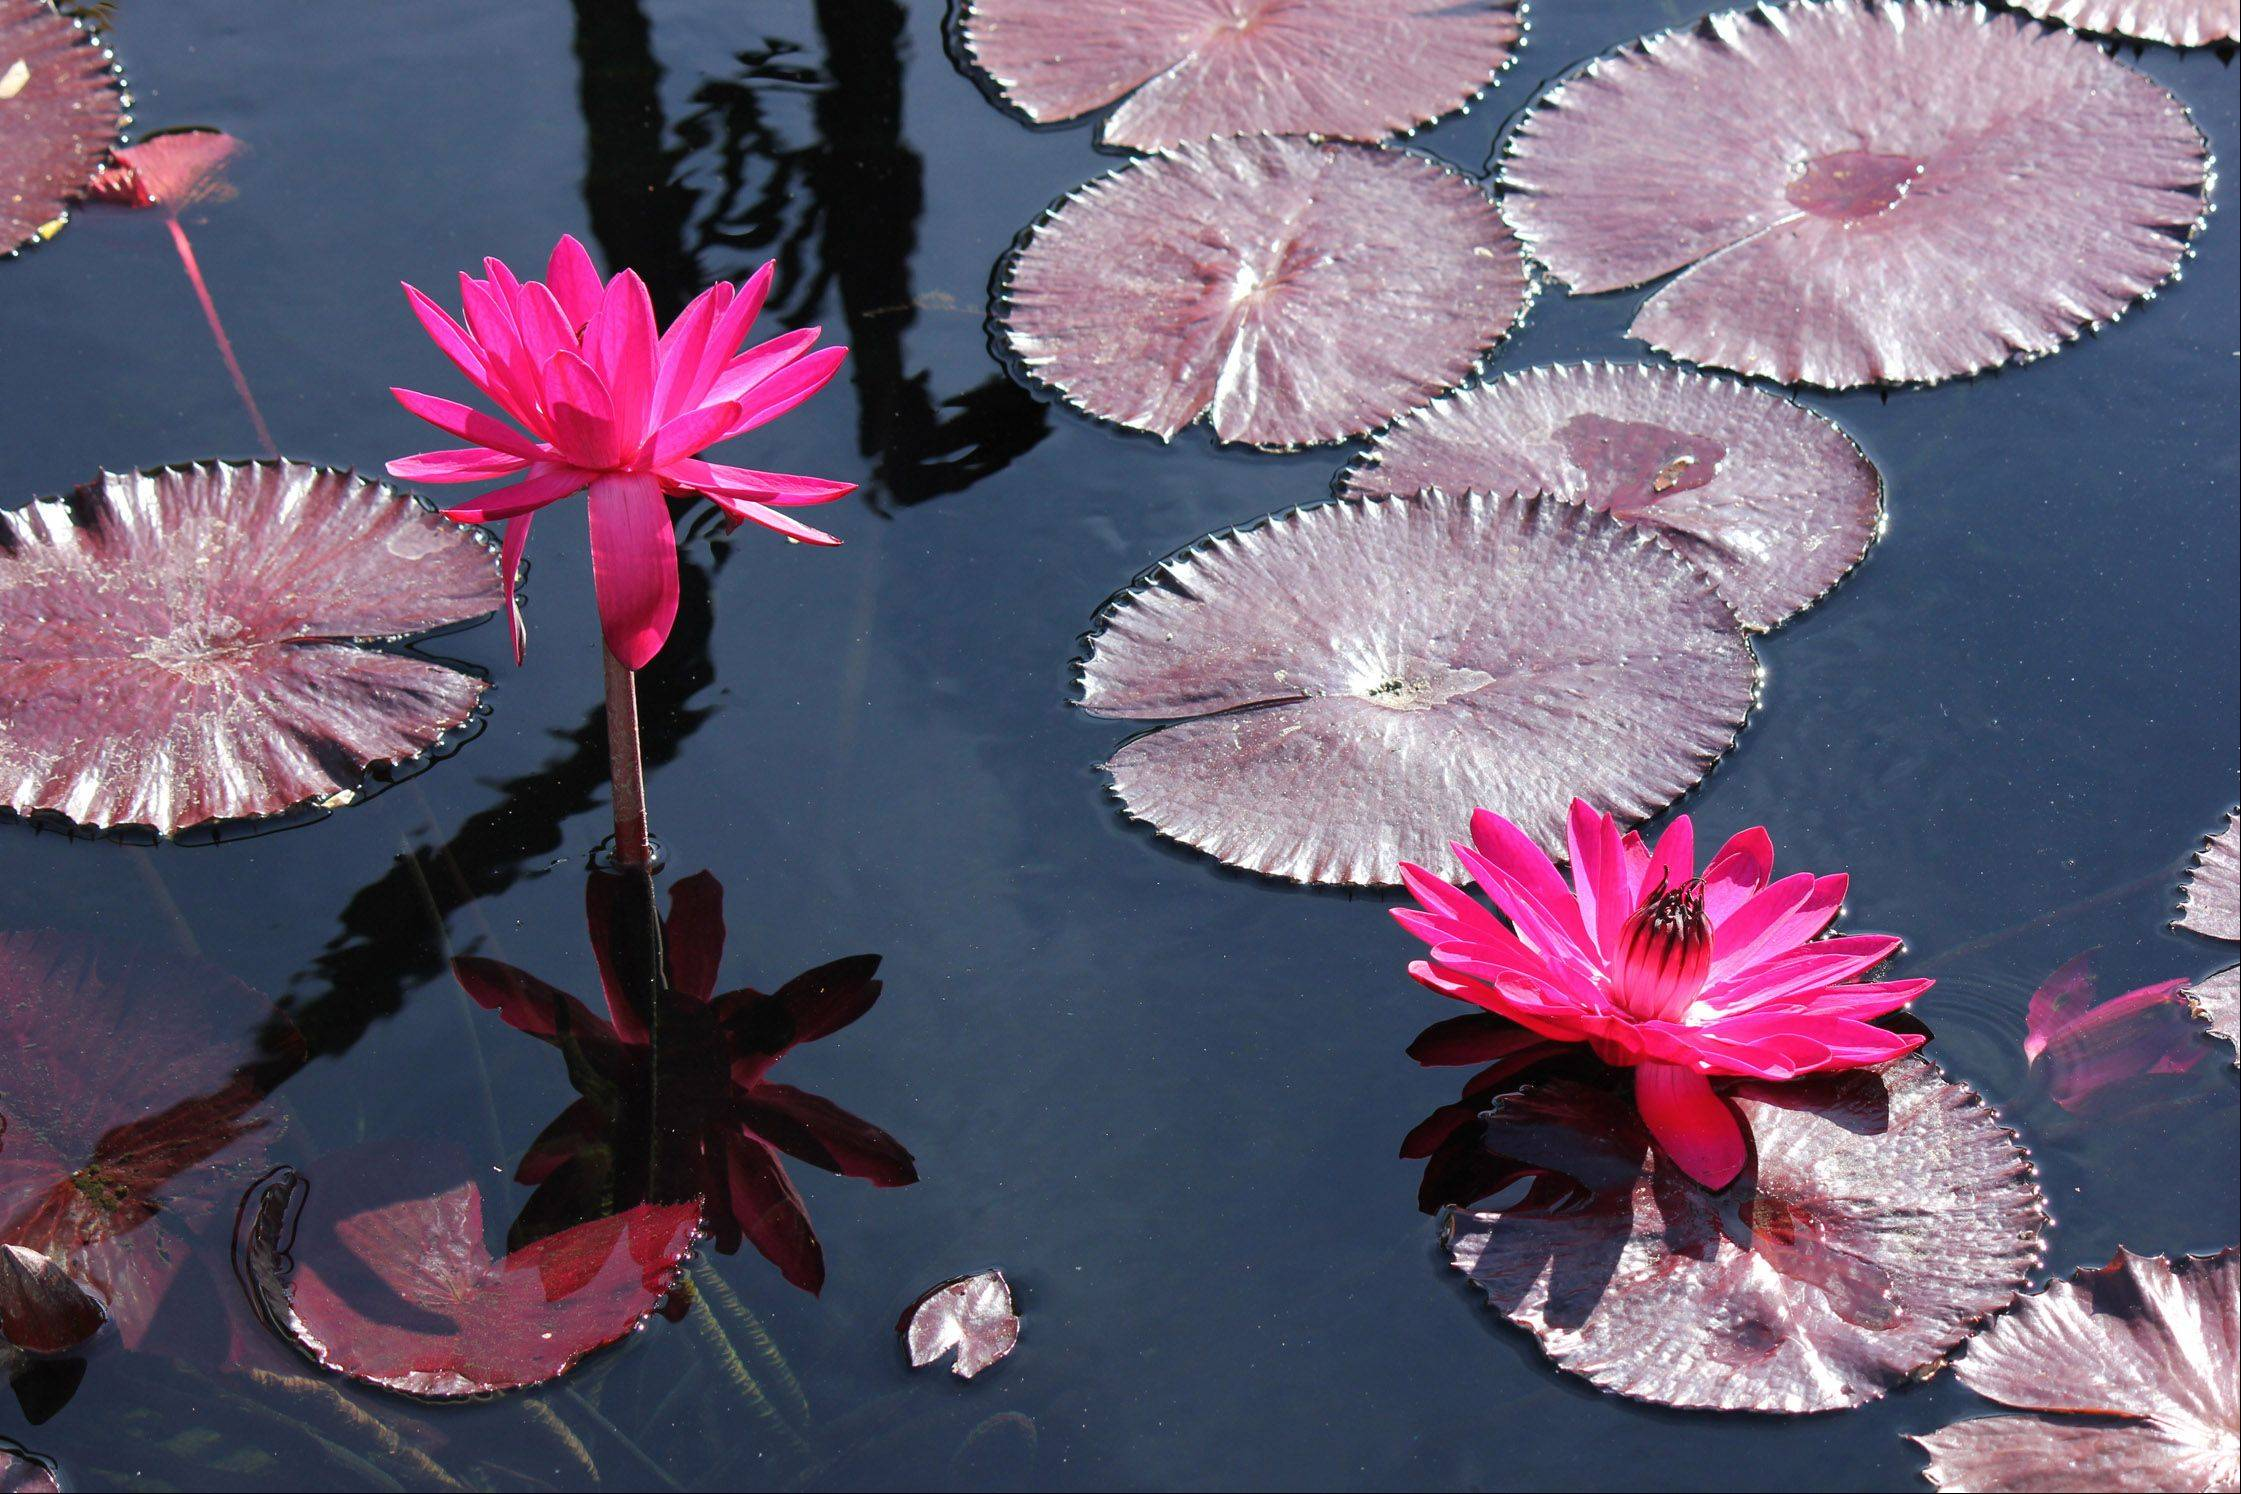 Water lilies lie on the surface of a pond at the Chicago Botanic Garden in Glencoe in late September.